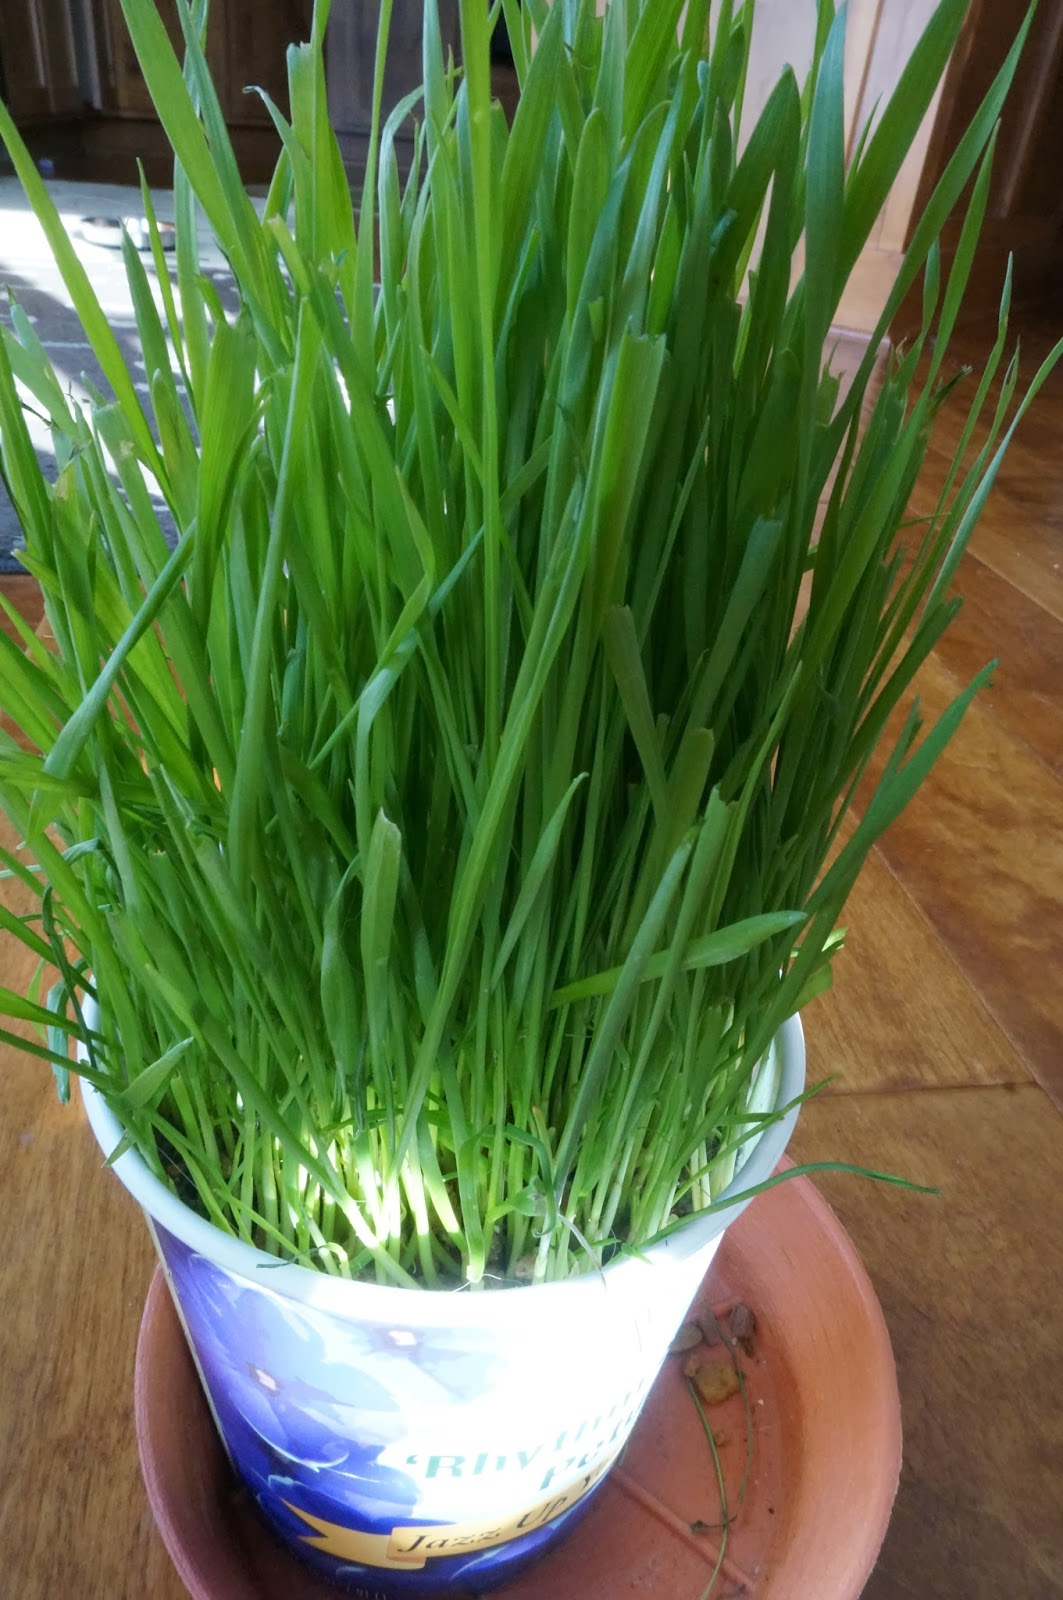 wheat grass growing in pot